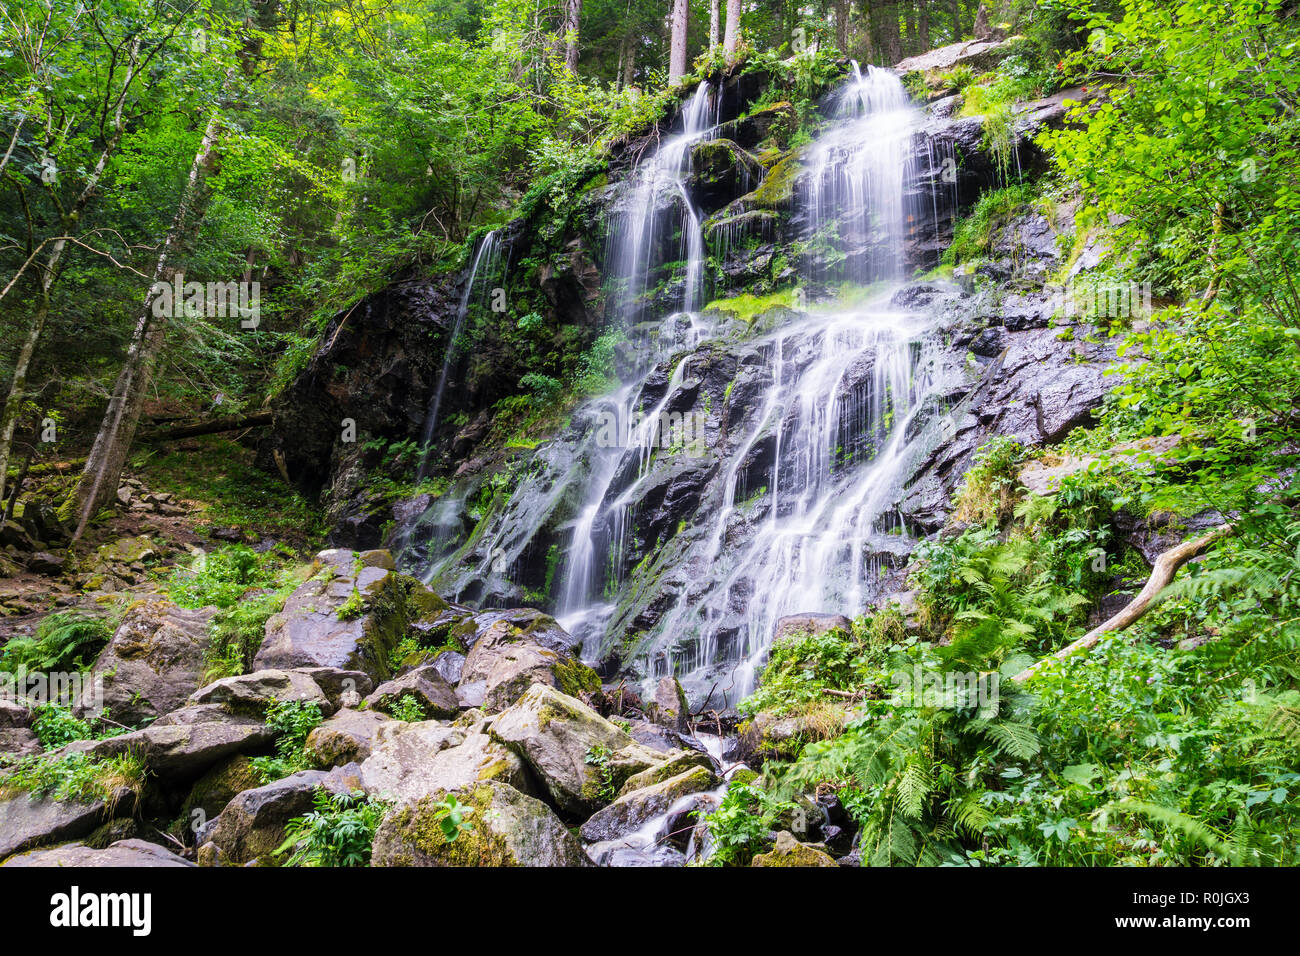 Germany, Rocky waterfall of Zweribach in green magic forest landscape - Stock Image